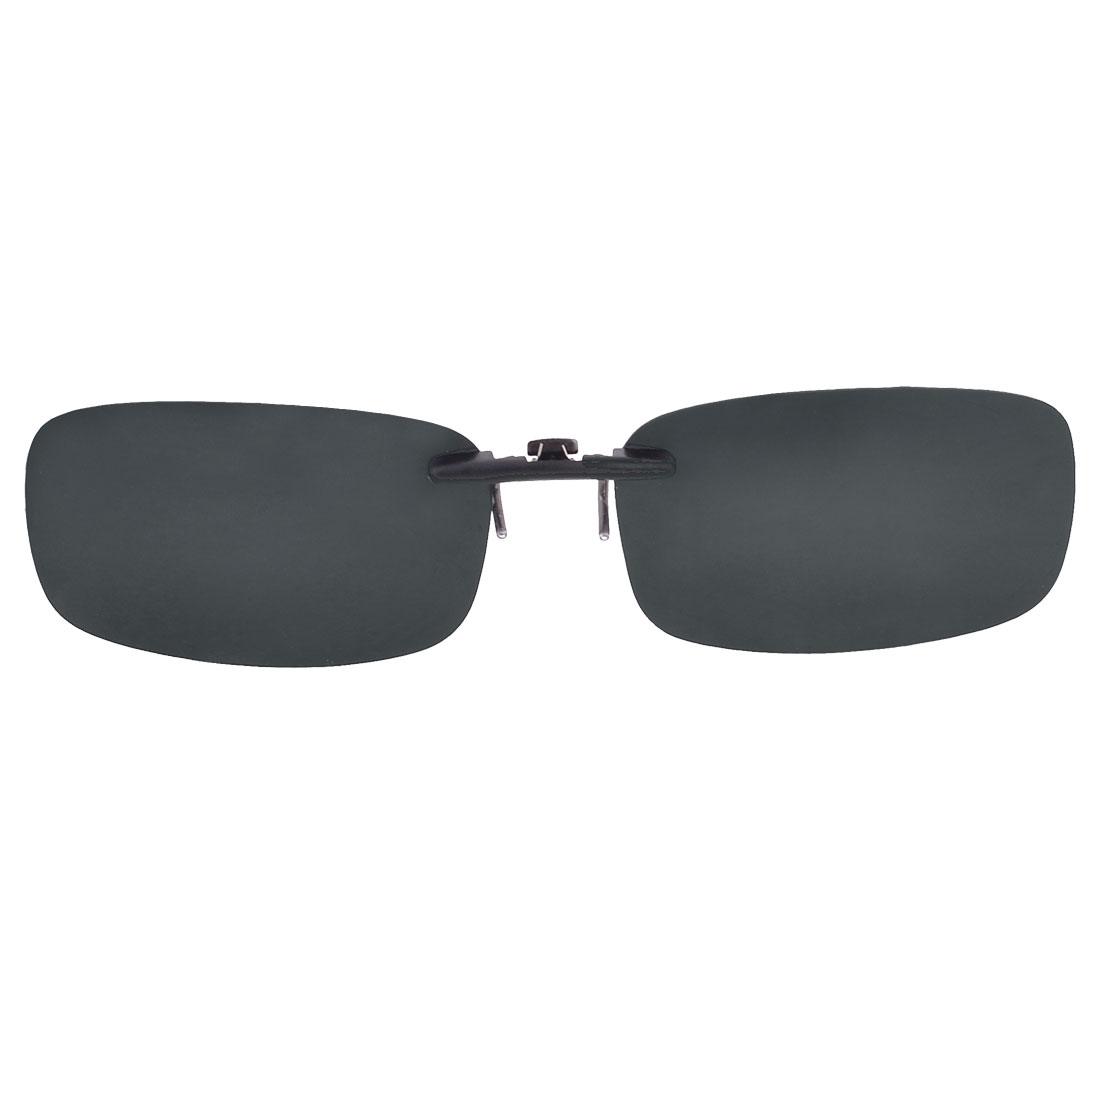 Polarised Clip on Sunglasses Glasses Large Grey